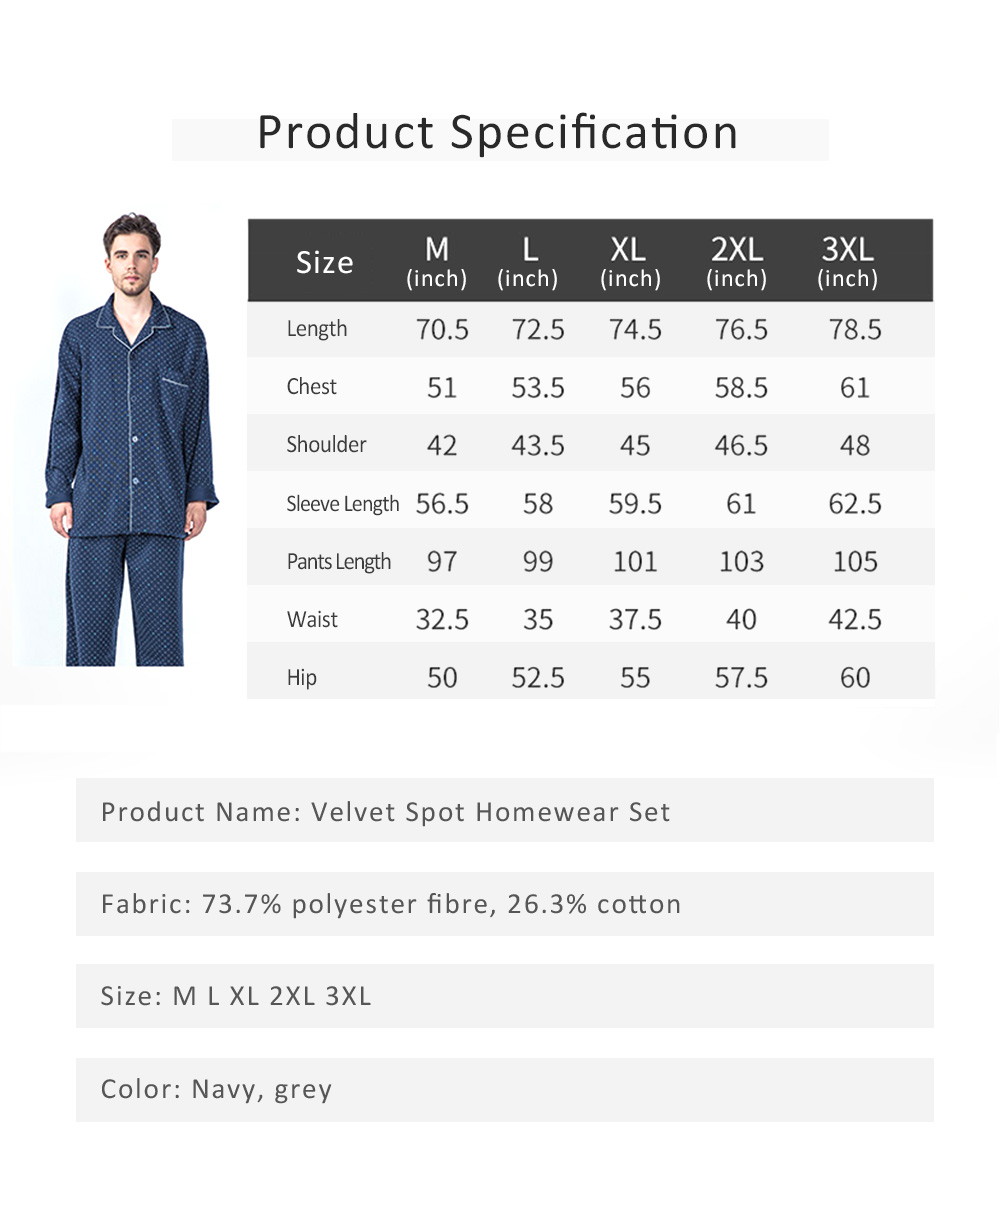 Pajamas Set for Men, Middle Age, Aged, Elderly, Long Sleeve Pajama for Autumn and Winter, Homewear Set with Big Large Size Sleepwear Set 6